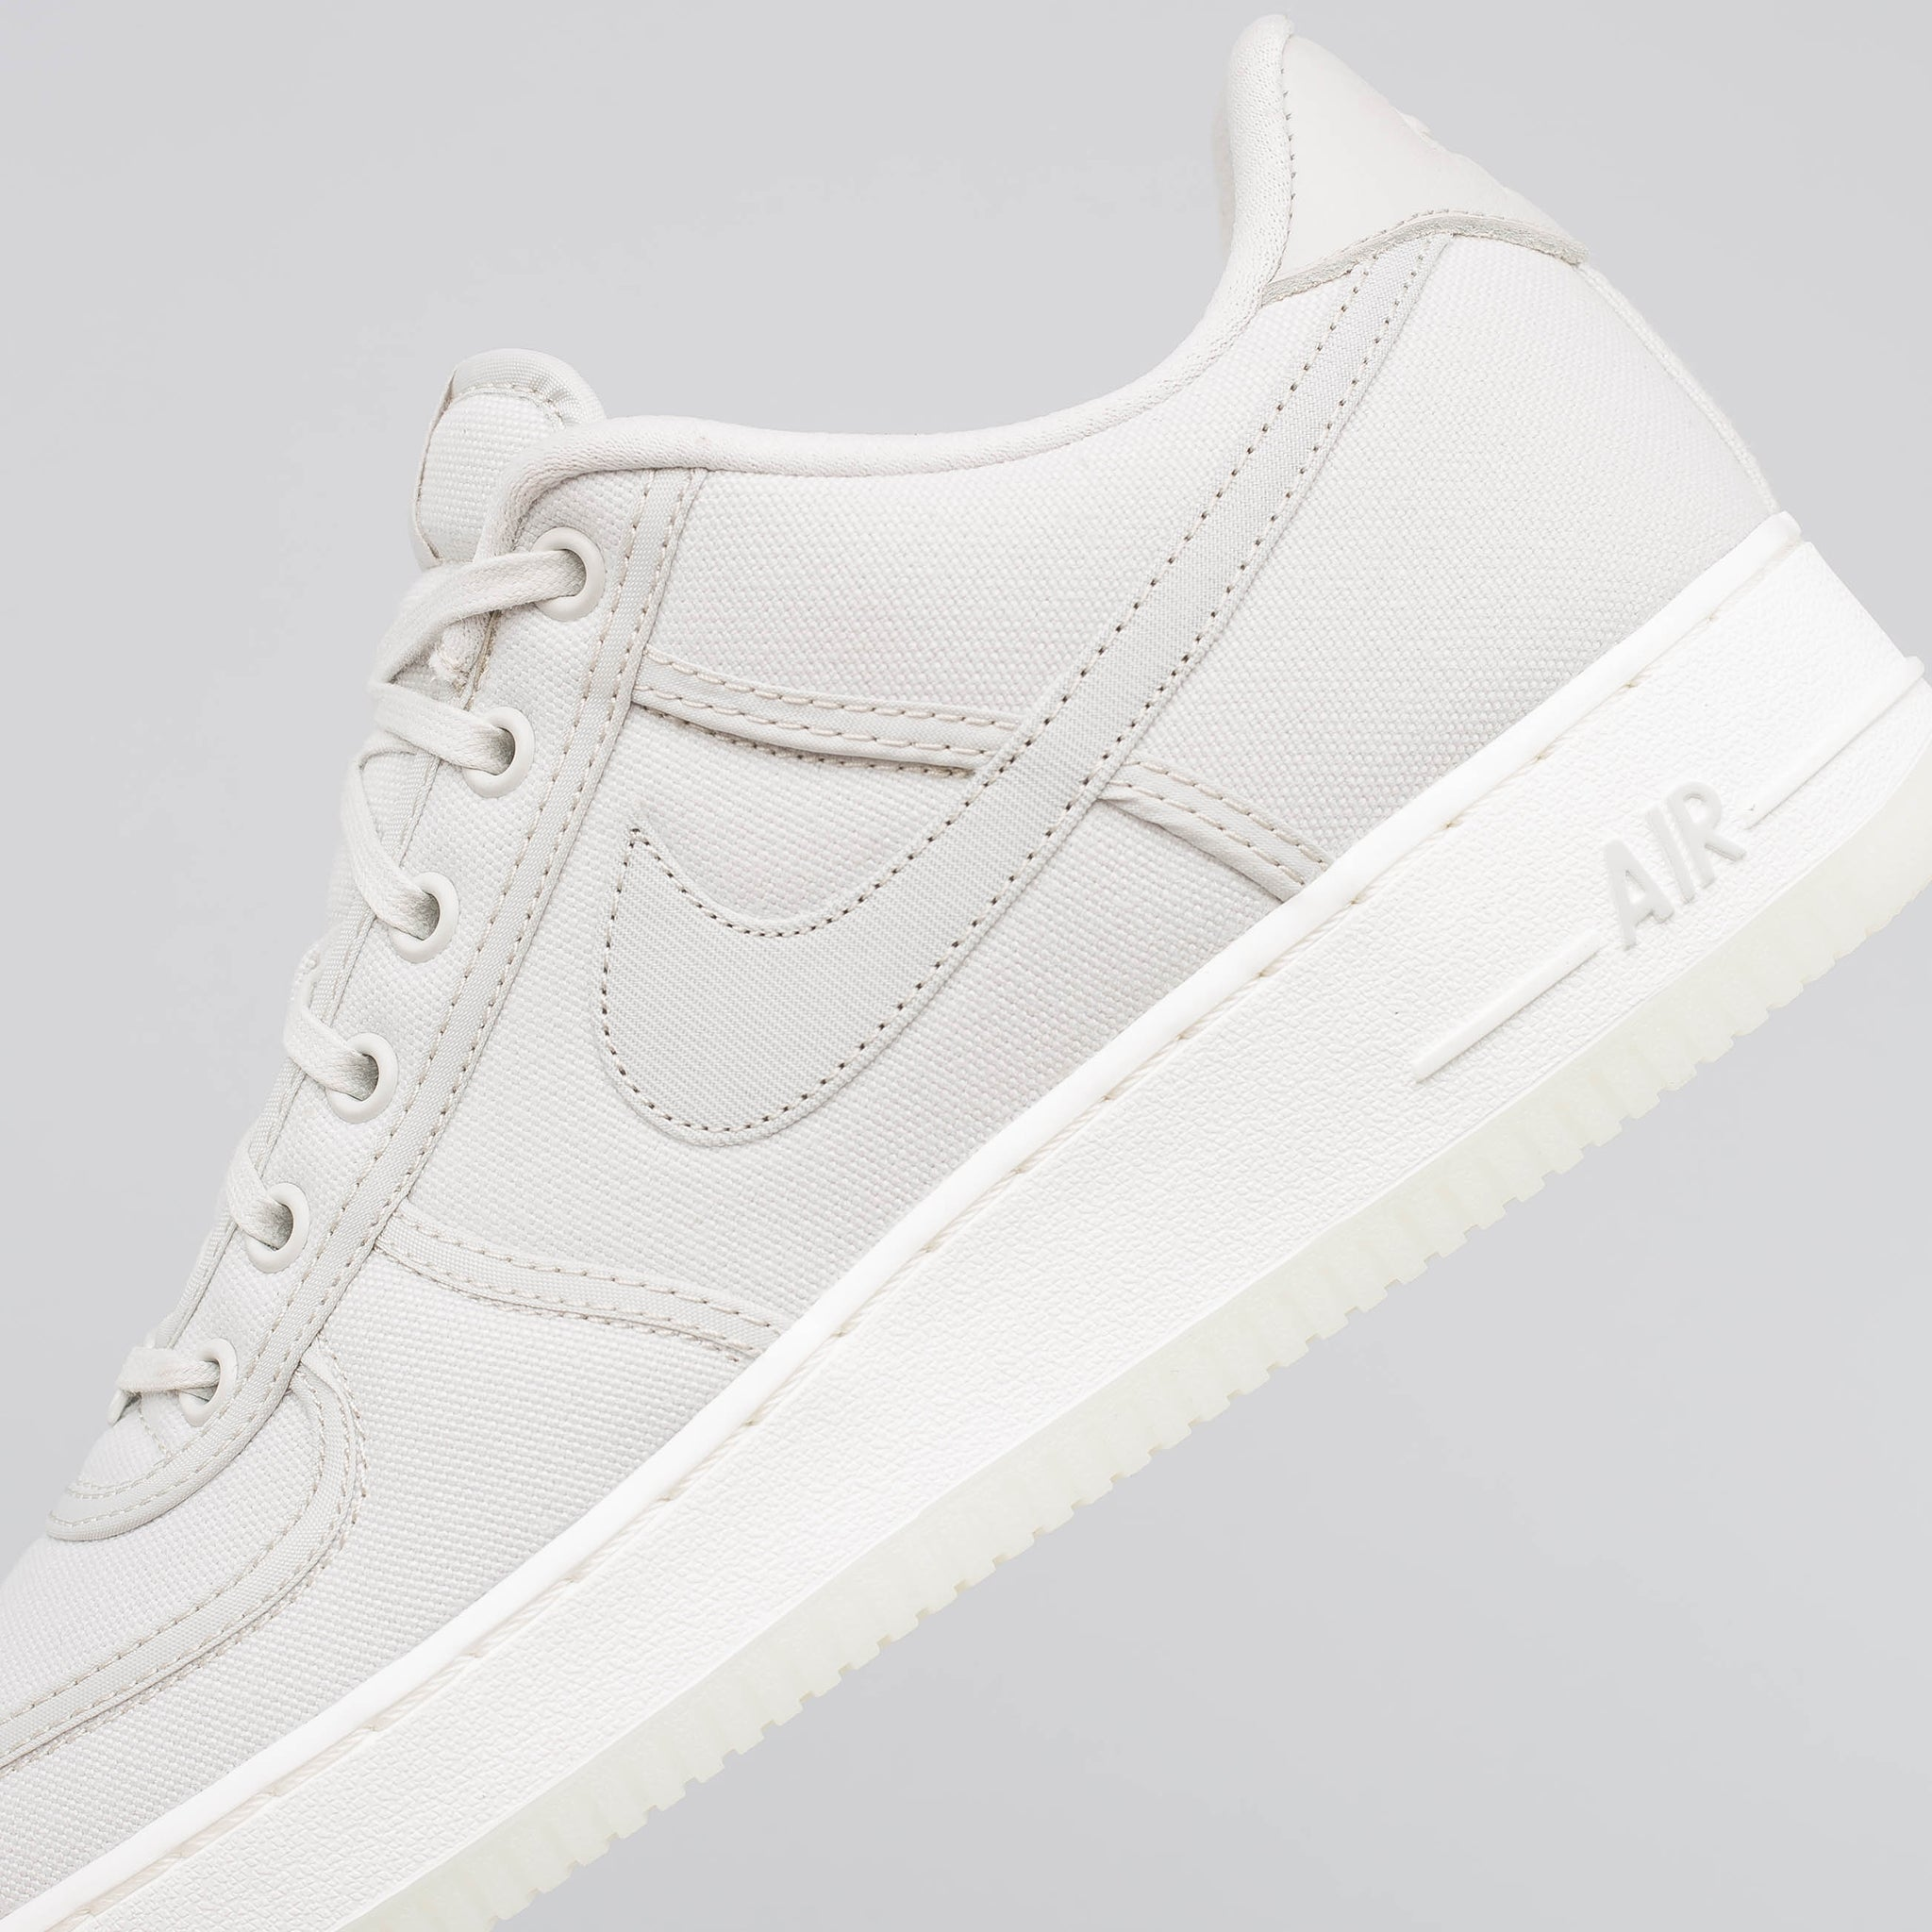 Air Force 1 Low Retro Canvas in Sail